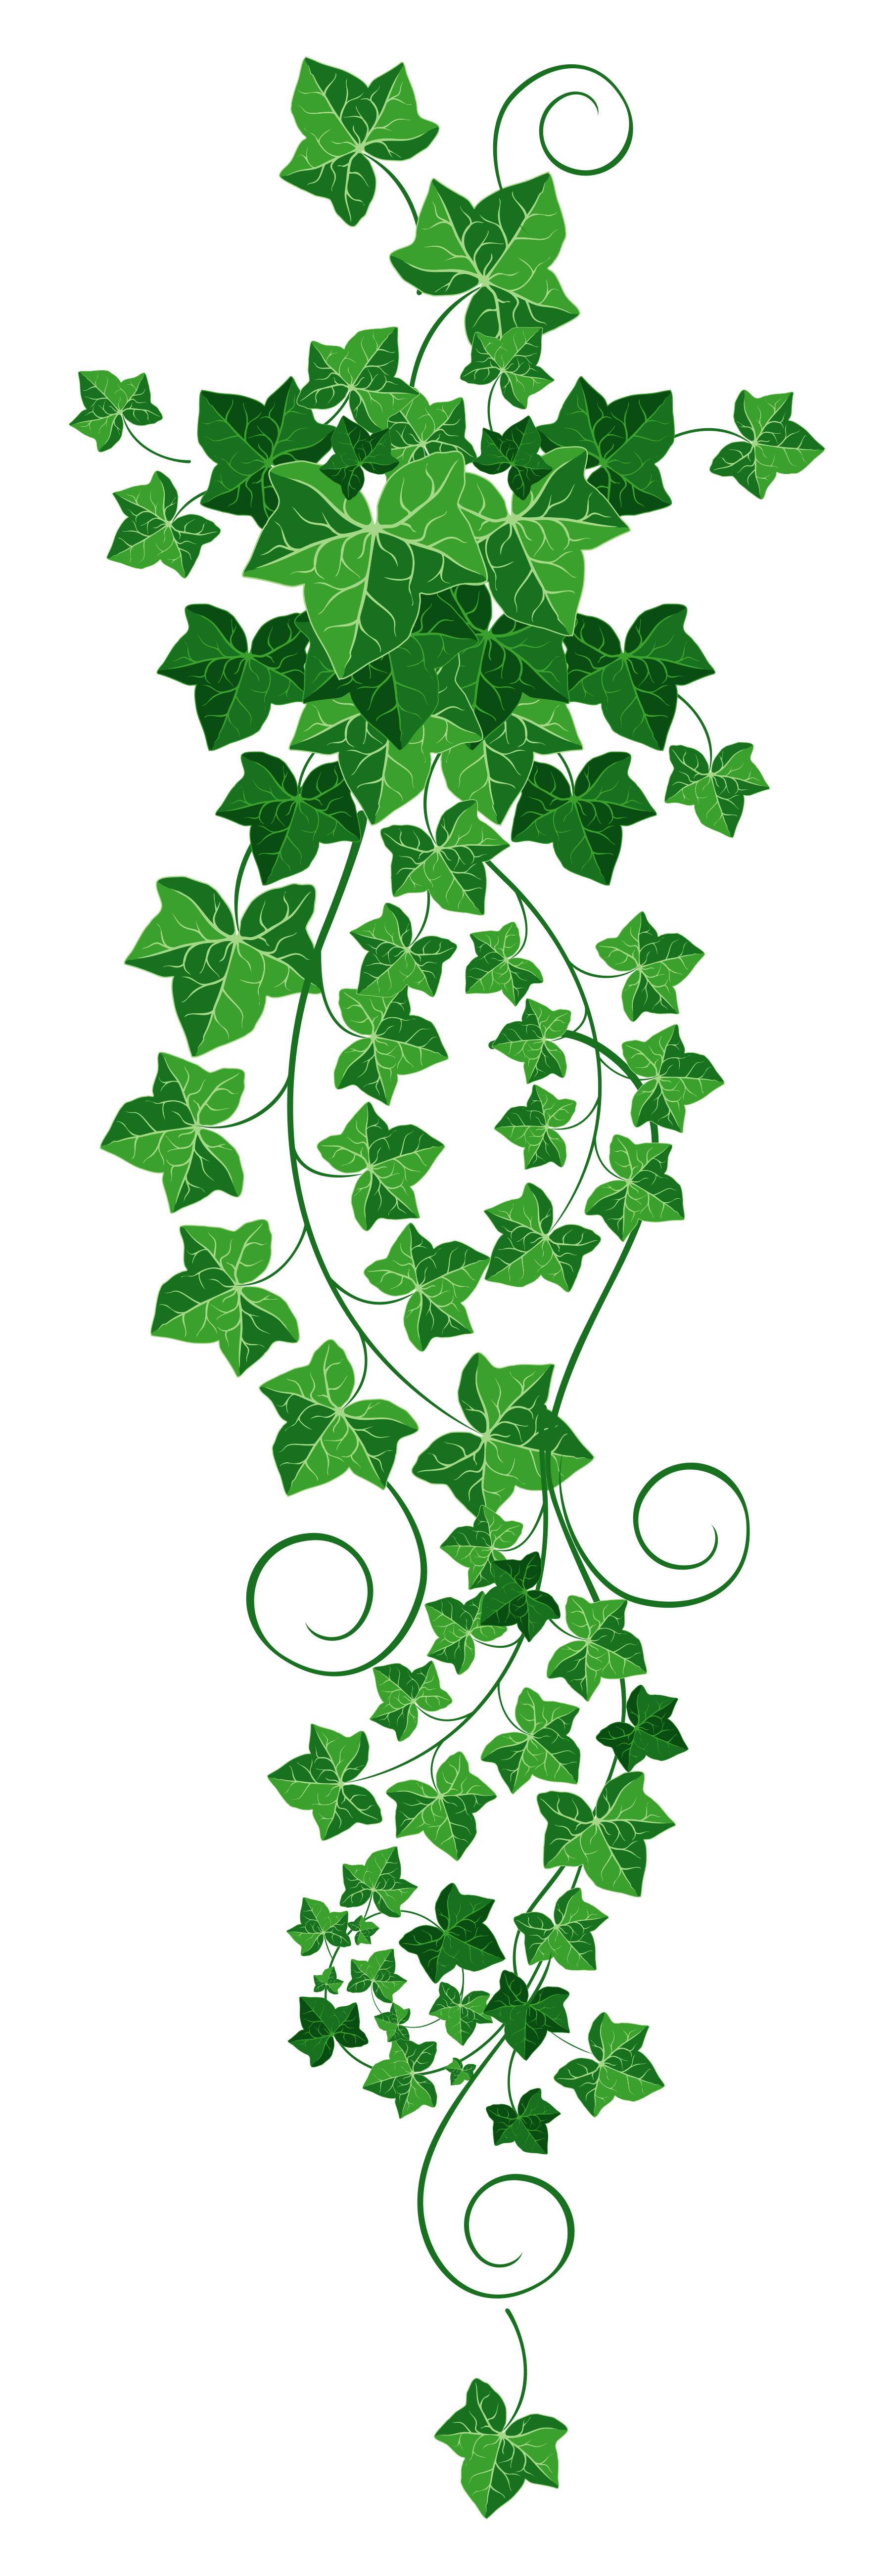 Ivy clipart wedding. Vine png picture h